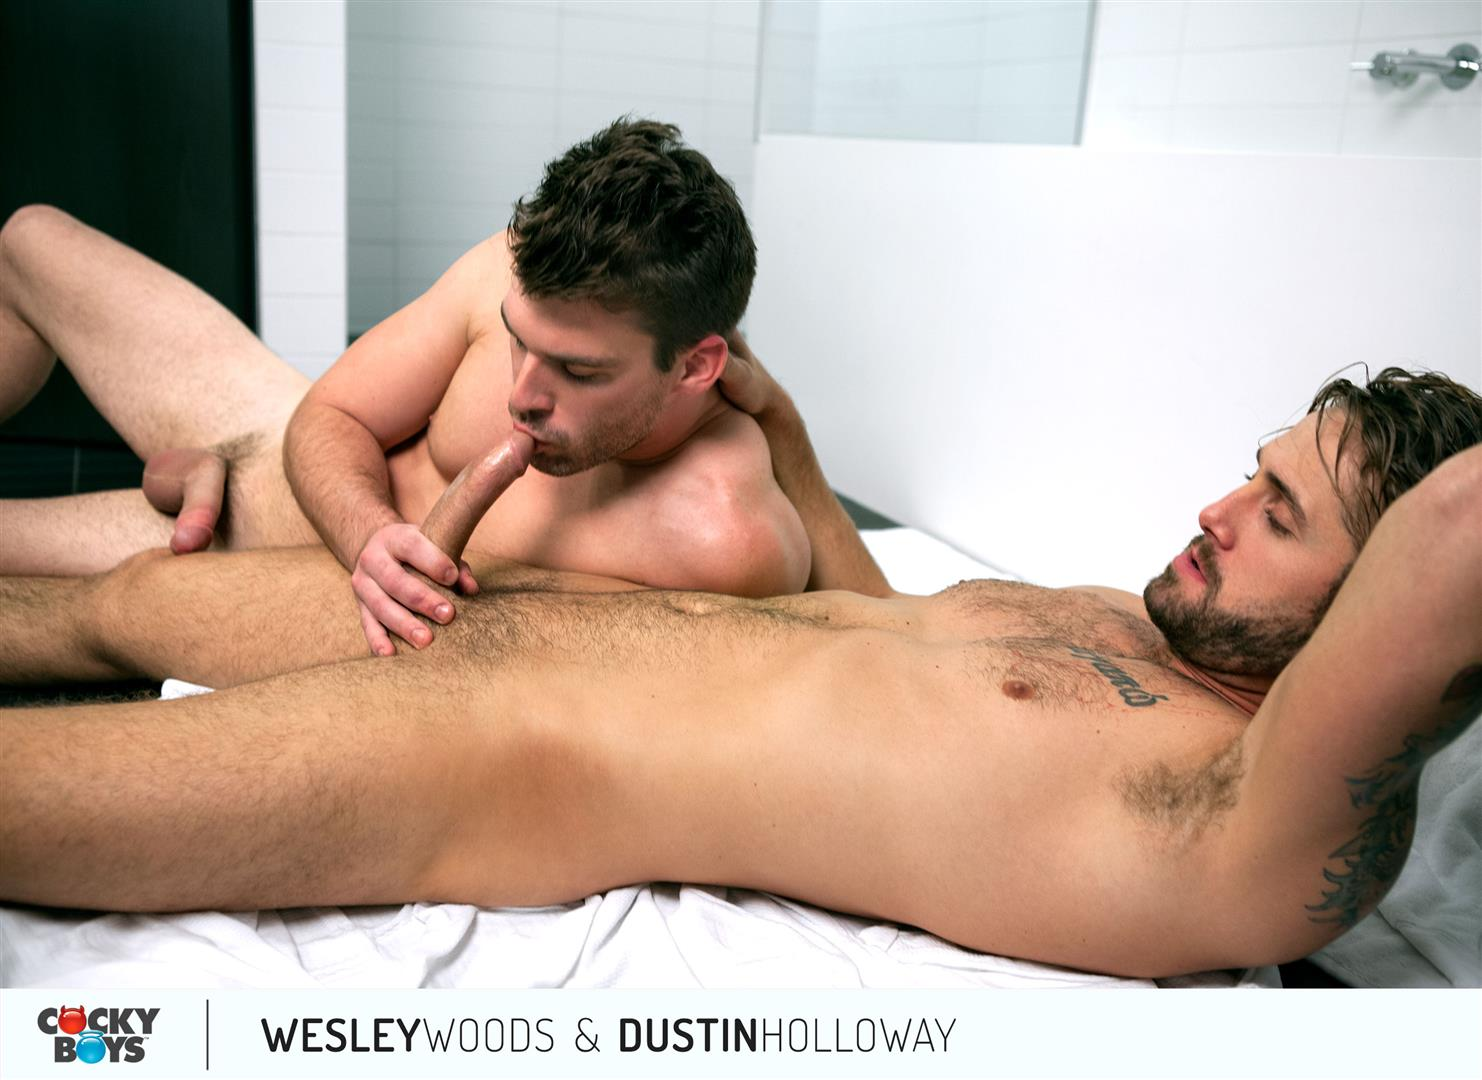 Cockyboys-Wesley-Woods-and-Dustin-Holloway-Hung-Hunks-Flip-Fucking-Amateur-Gay-Porn-22 Cockyboys:  Wesley Woods and Dustin Holloway Flip-Flop Fucking